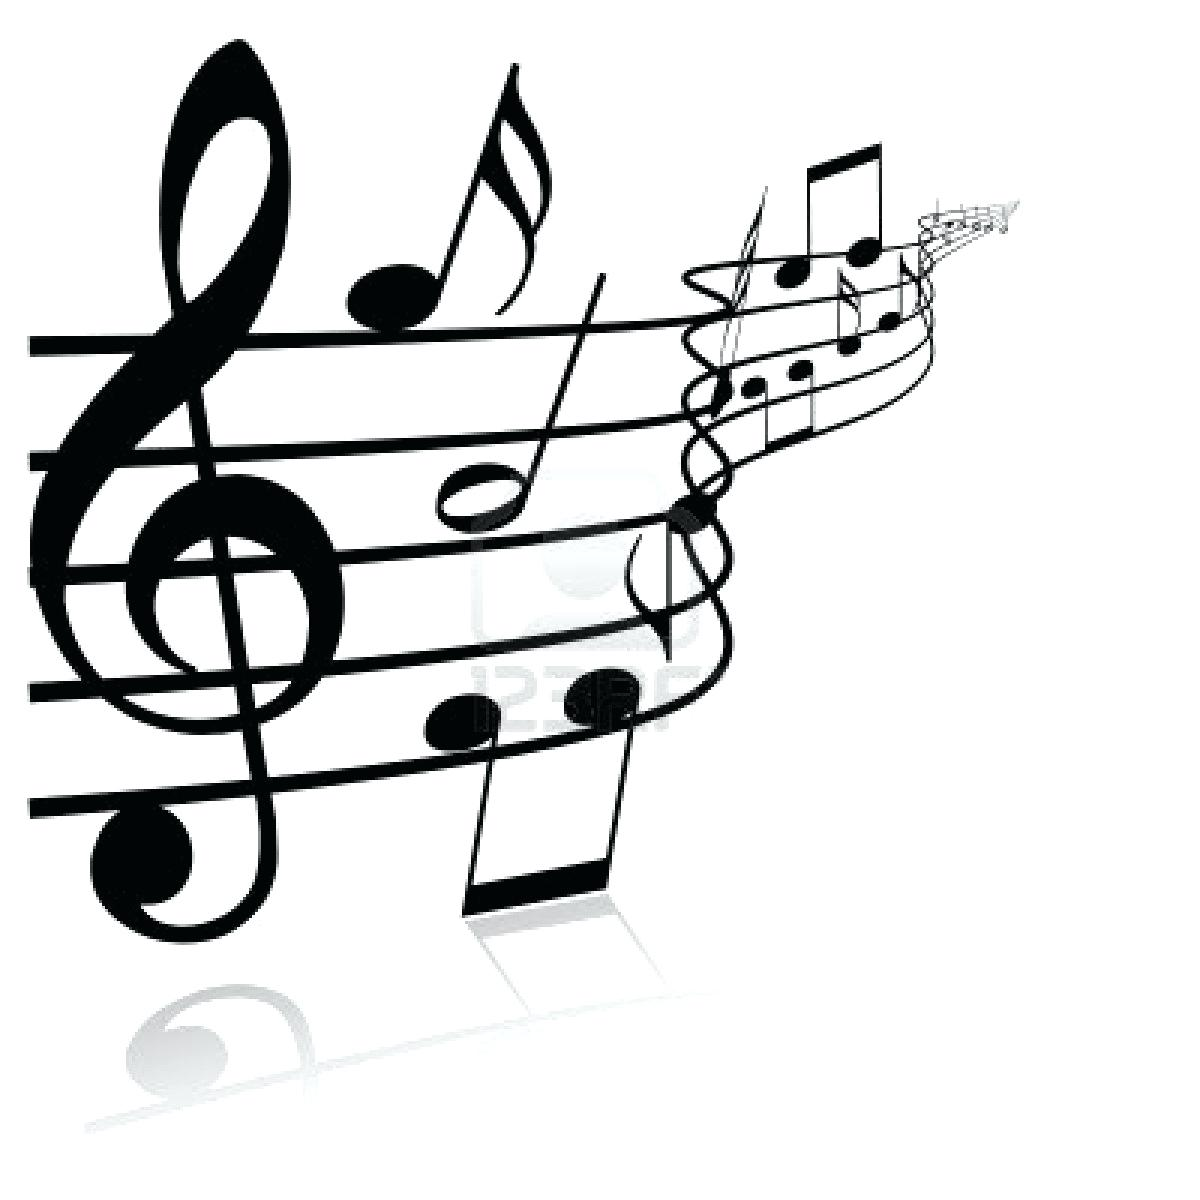 1200x1200 Musical Notes Symbols 28 Appealing Coloring Pages Music For Adults